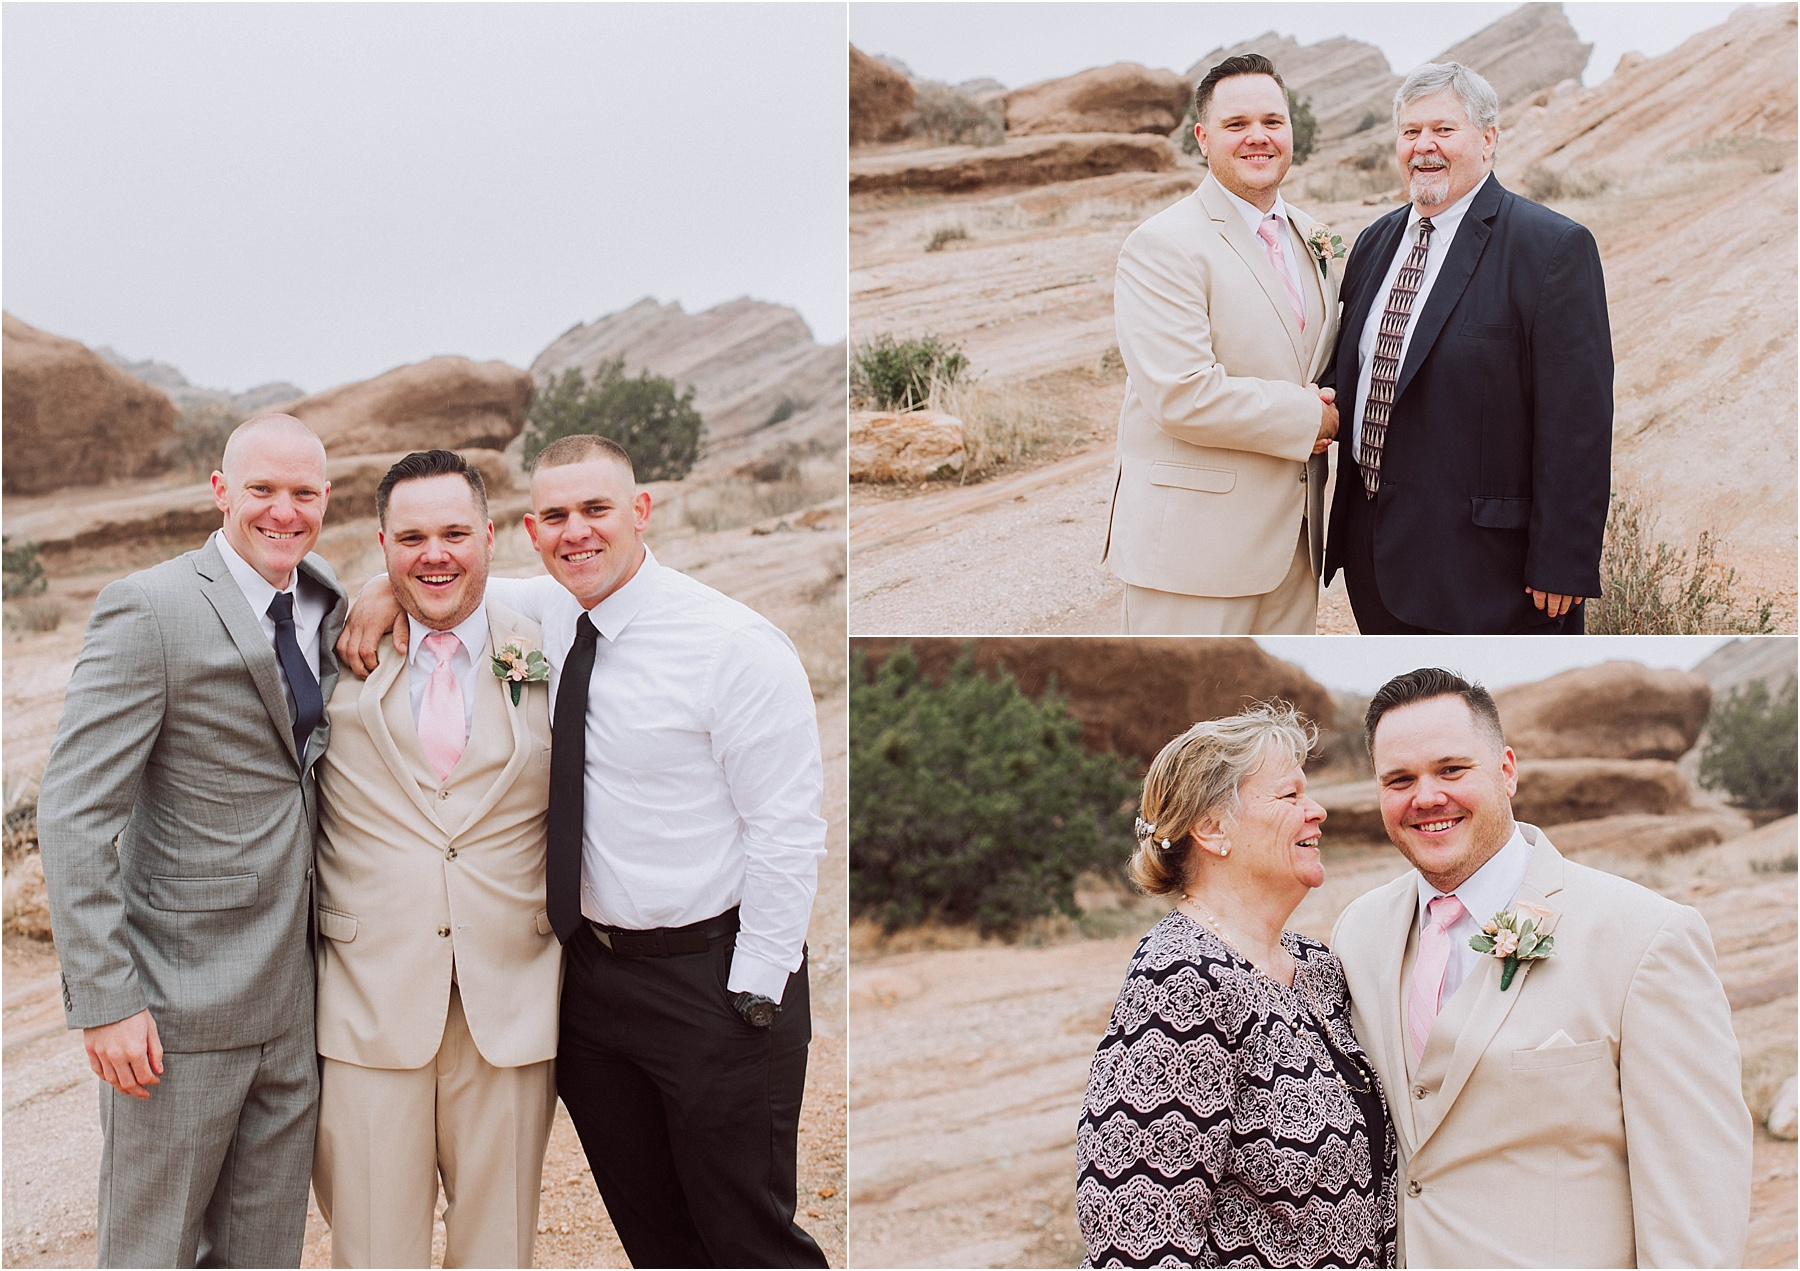 Vasquez Rocks Intimate Wedding & Elopement Photography - Family Formal Portraits